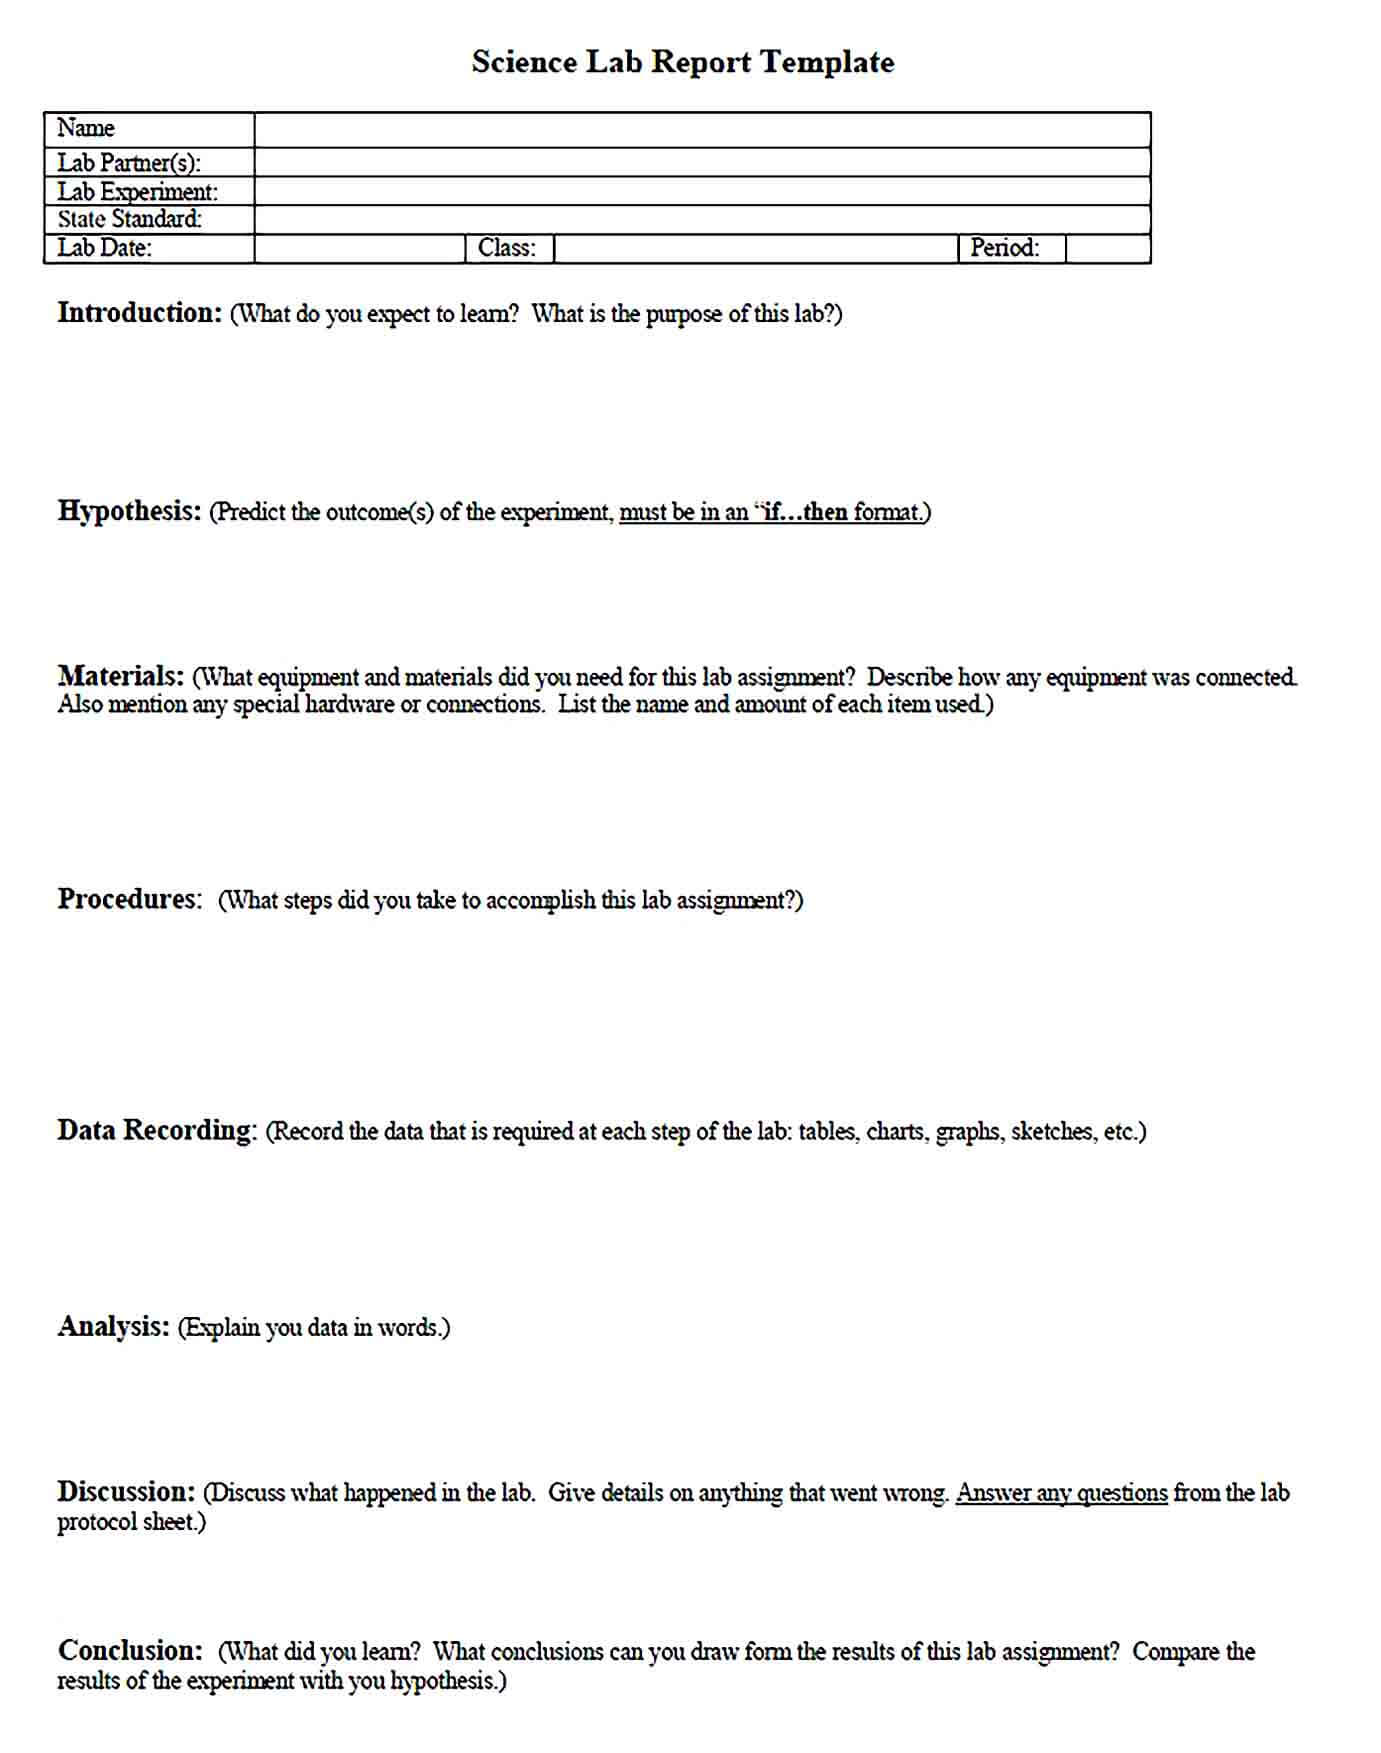 Sample Science Lab Report Template